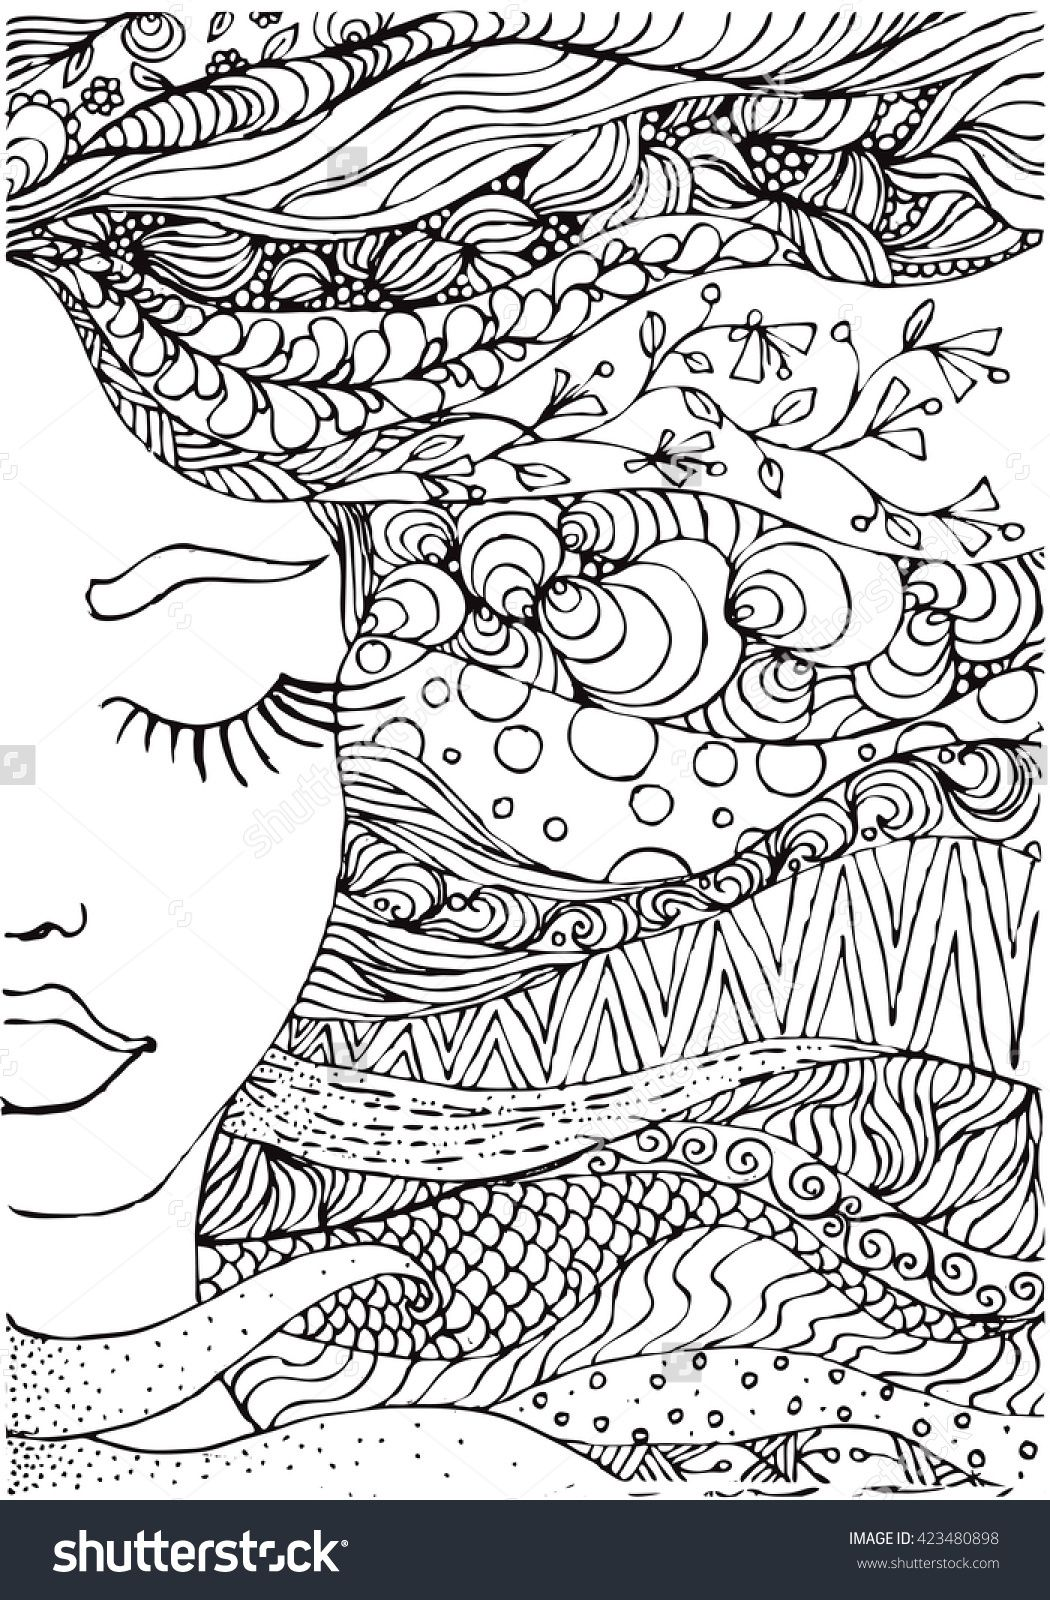 ink doodle womans face and flowing coloring page zendala | drawings ...